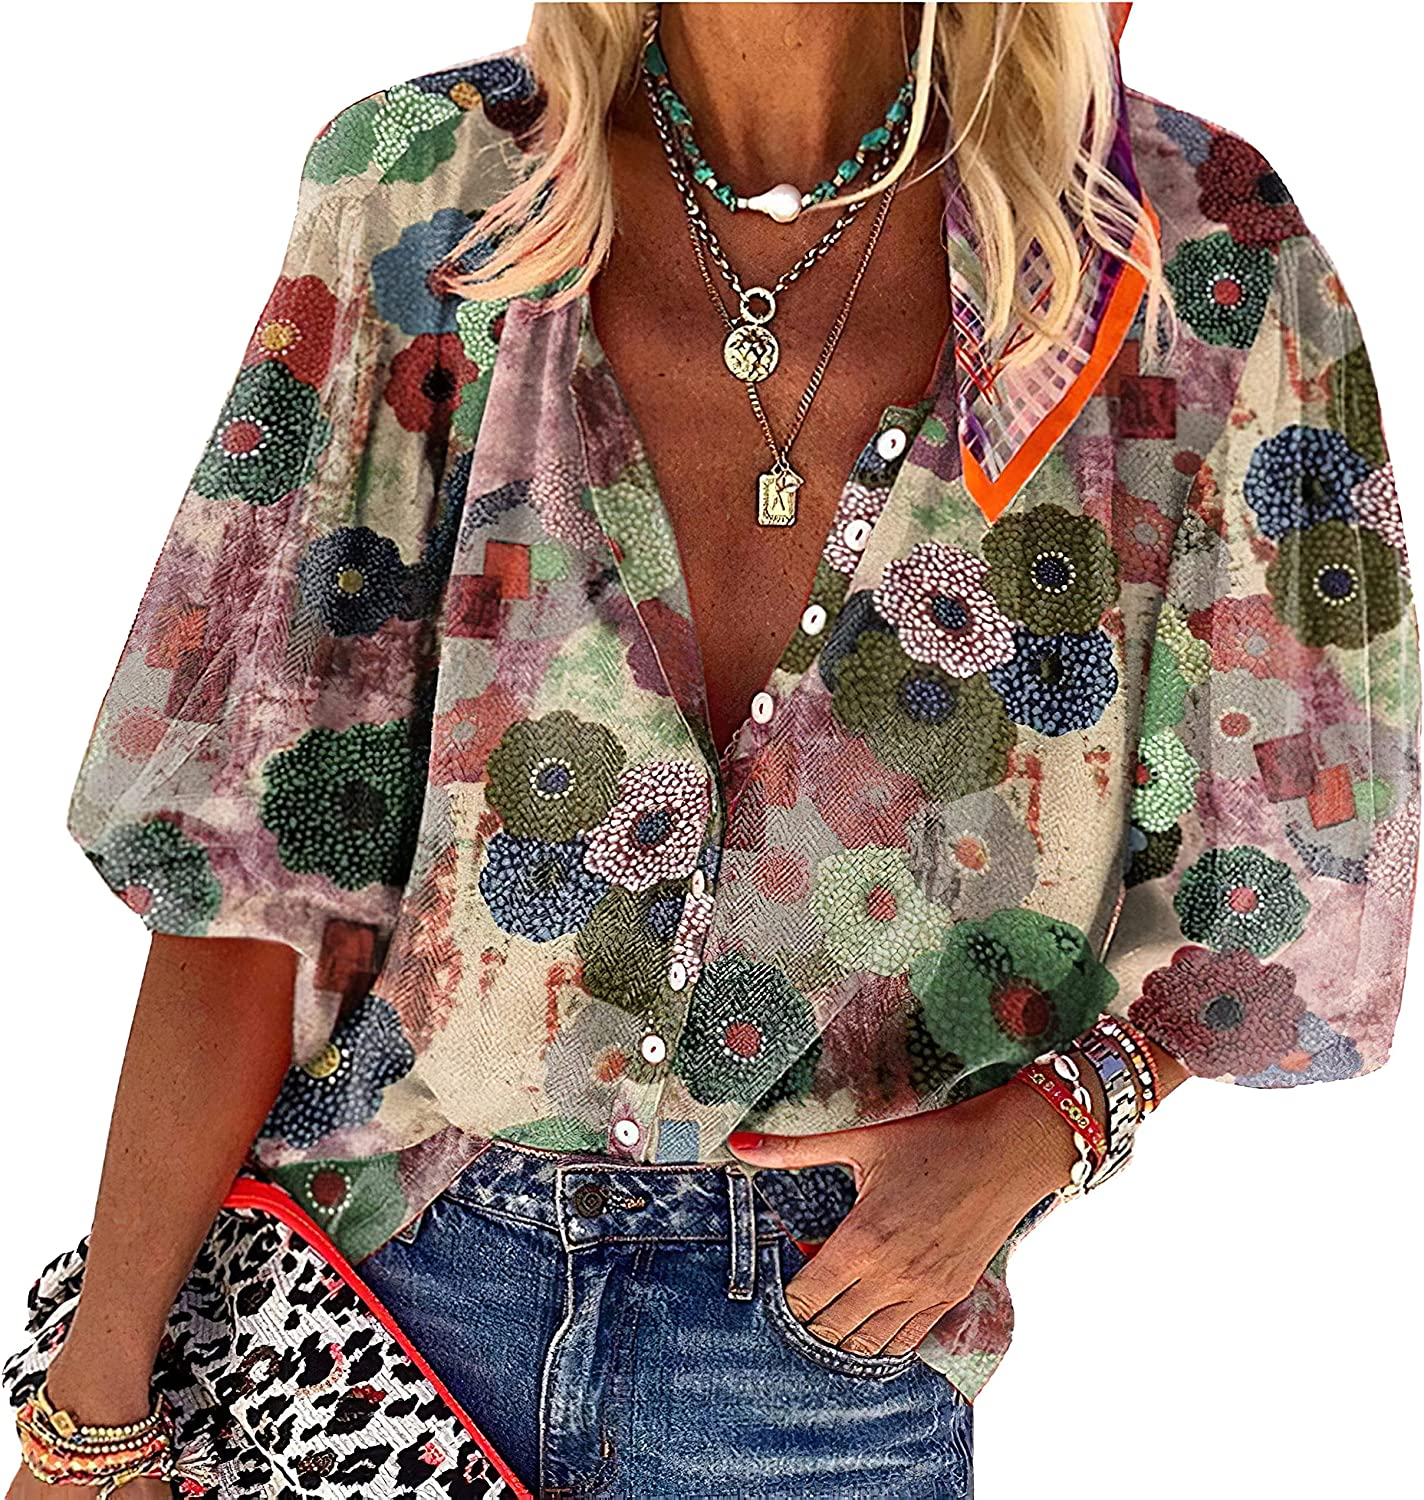 Womens Floral Printed Chiffon T-Shirt Summer Lapel V Neck 3/4 Shirts for Women Tops Button Down Blouses Casual Tunic